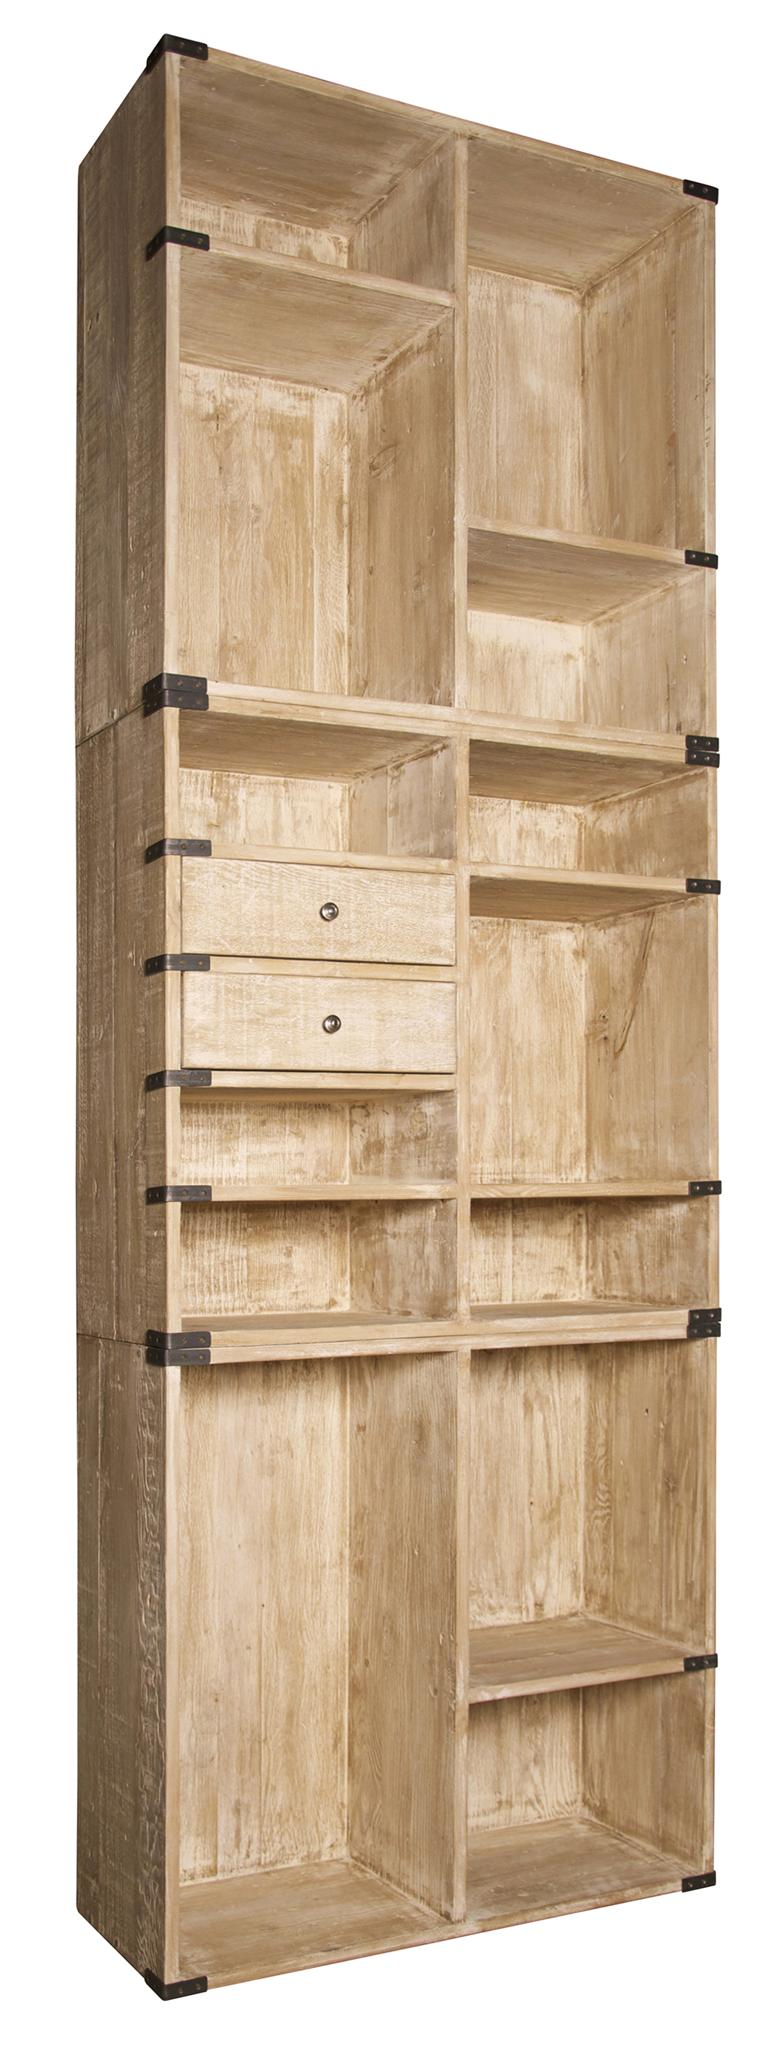 Rolling Four Shelf Bookcase